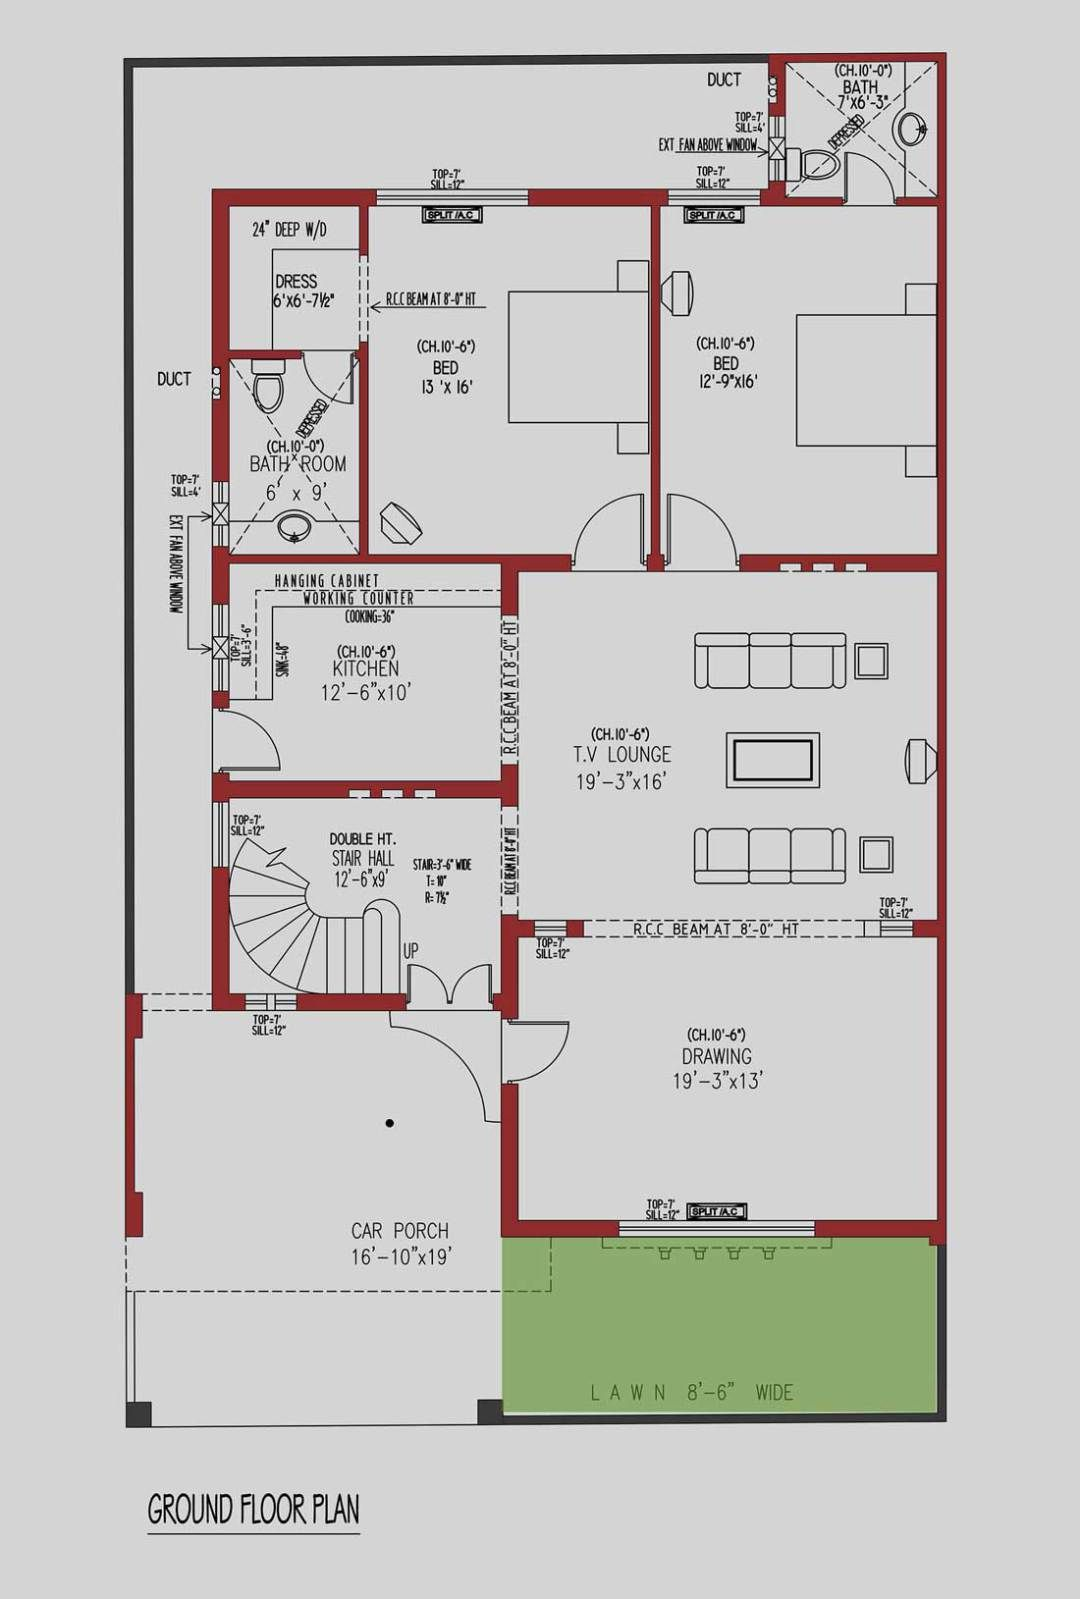 10 Marla House Plan 250 Sq Yds Architecture 360 Design Estate 2 10 Marla House Plan Small House Design Plans House Map